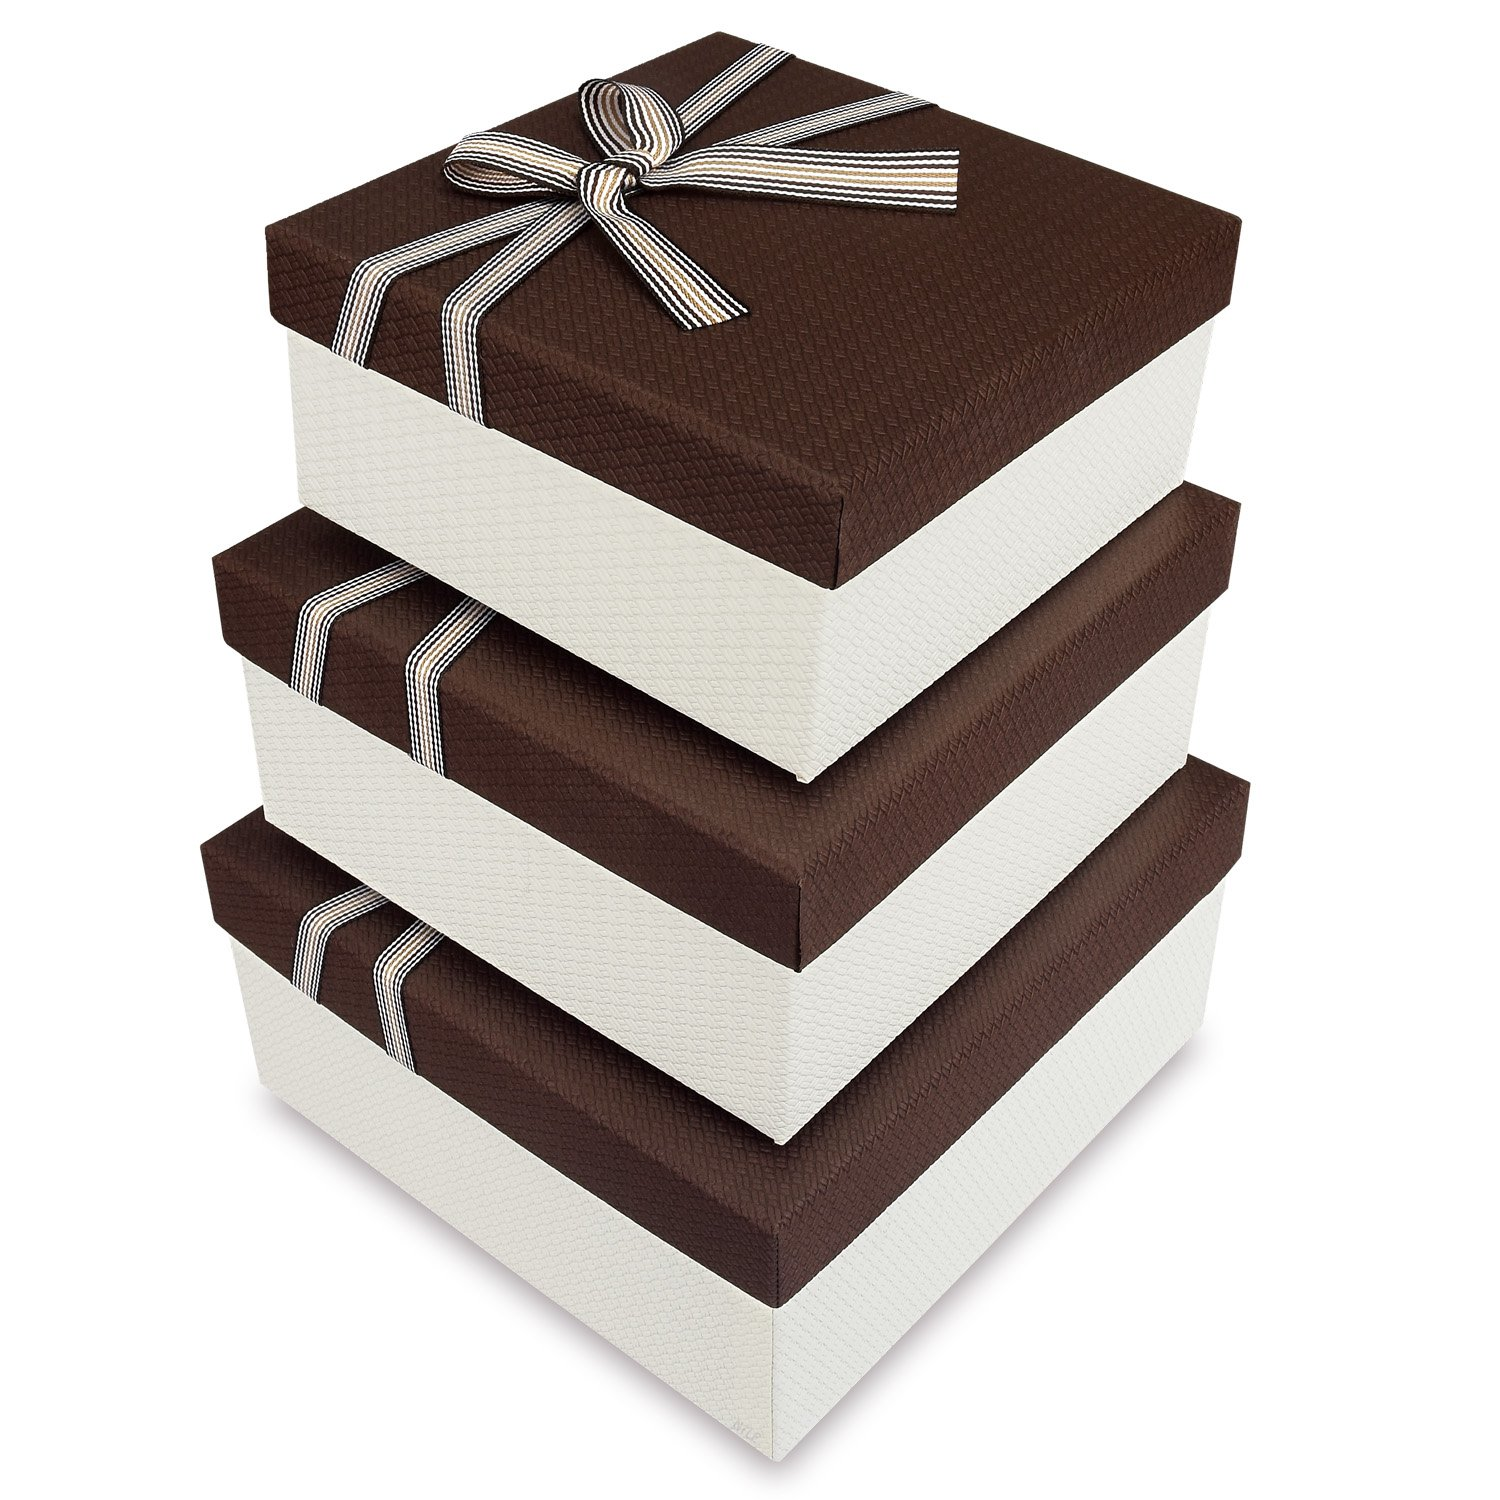 Square Nesting Gift Boxes, A Set of 3,Brown Color with A Bowtie by Ikee Design (Image #2)